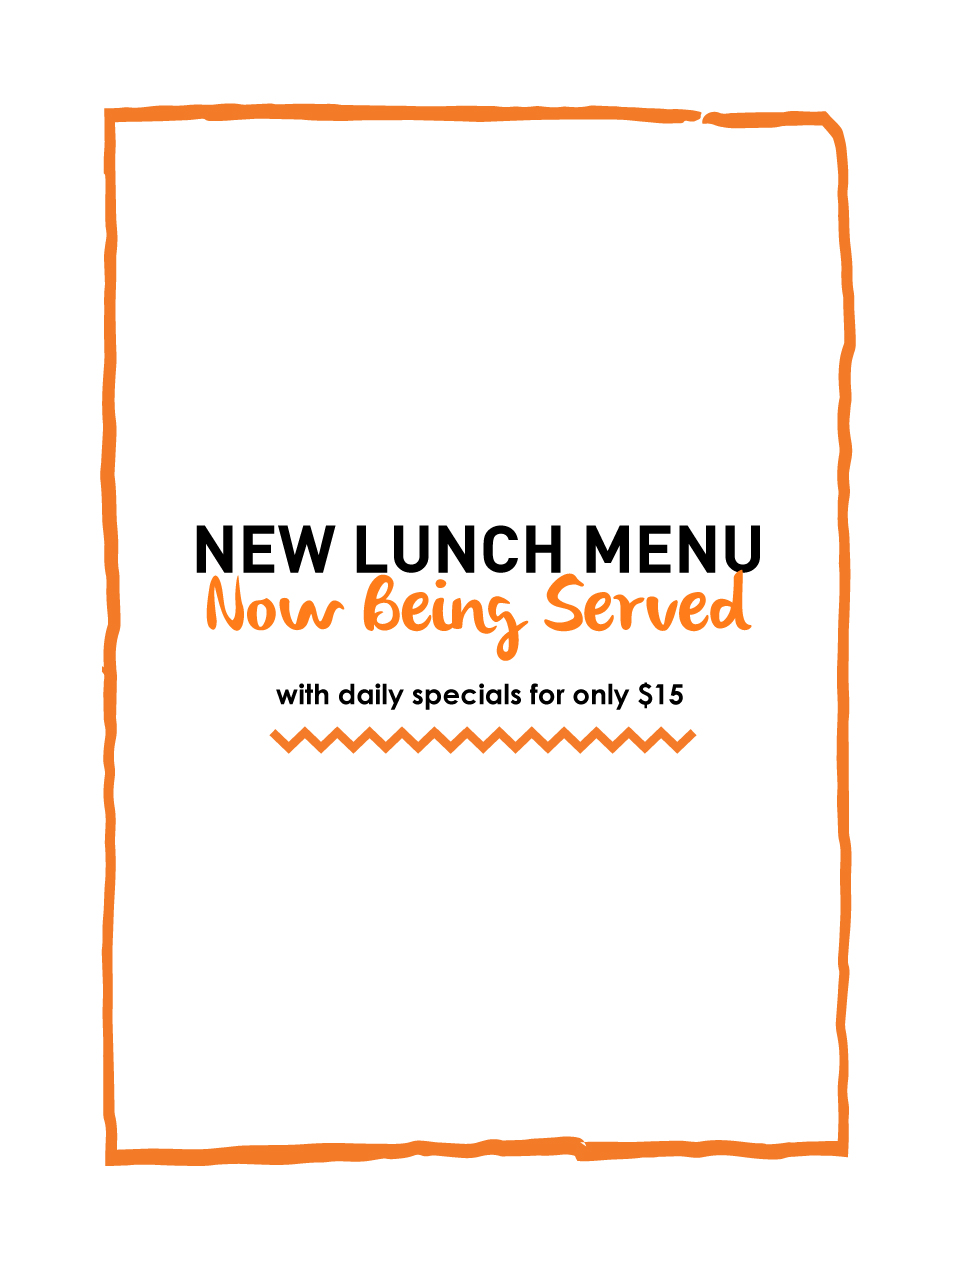 New Lunch Menu Now Being Served